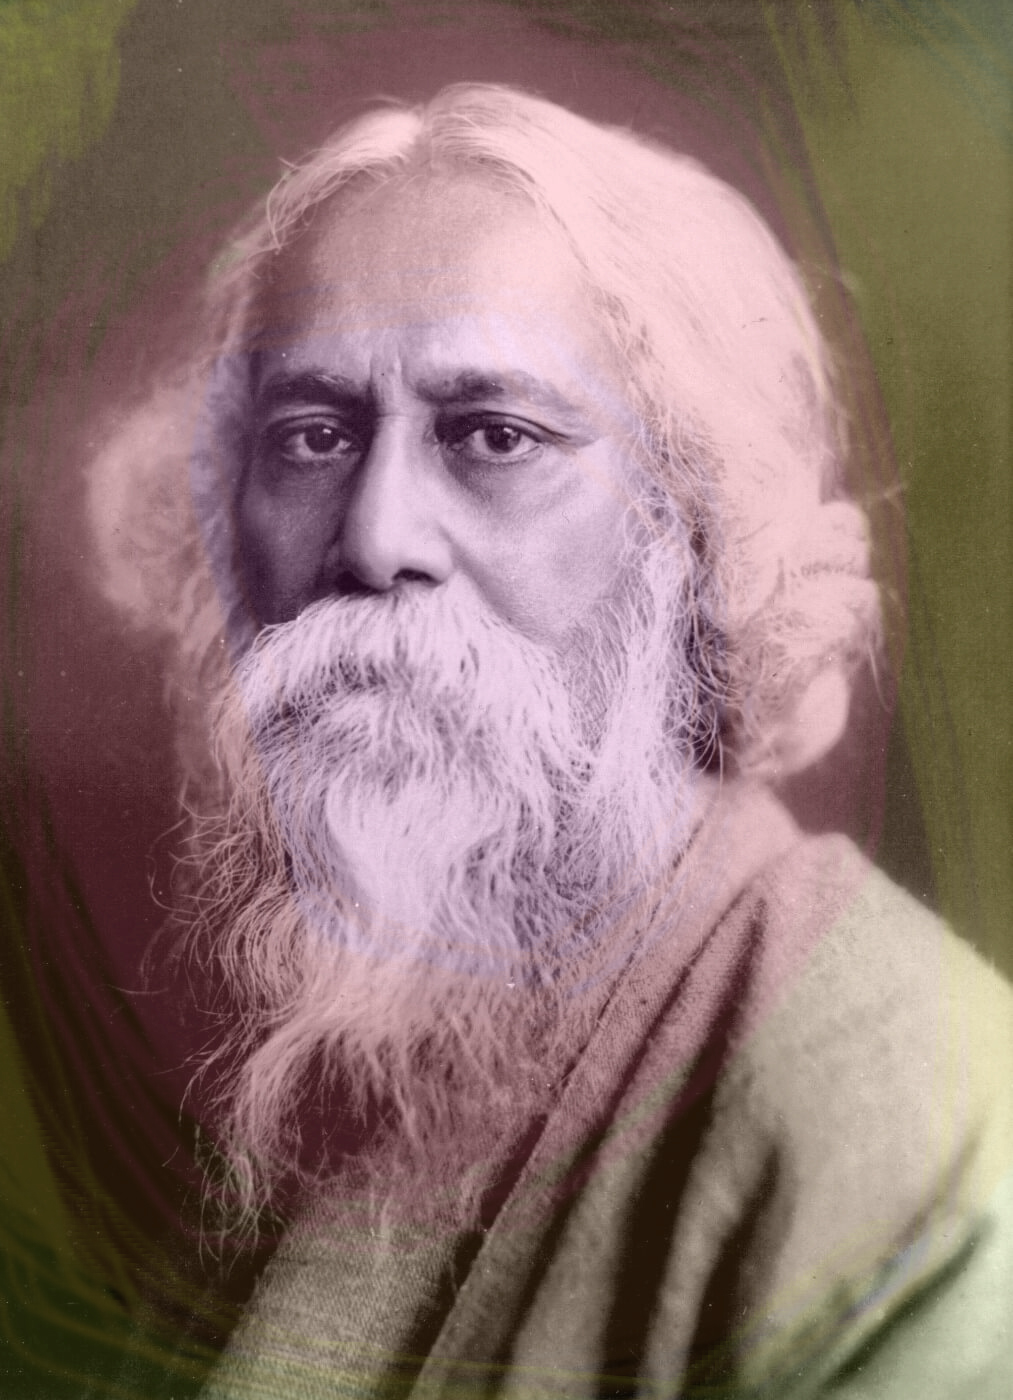 Rabindranath Tagore - Faith is the bird that feels the light when the dawn is still dark.Everything comes to us that belongs to us if we create the capacity to receive it.The flower which is single need not envy the thorns that are numerous.